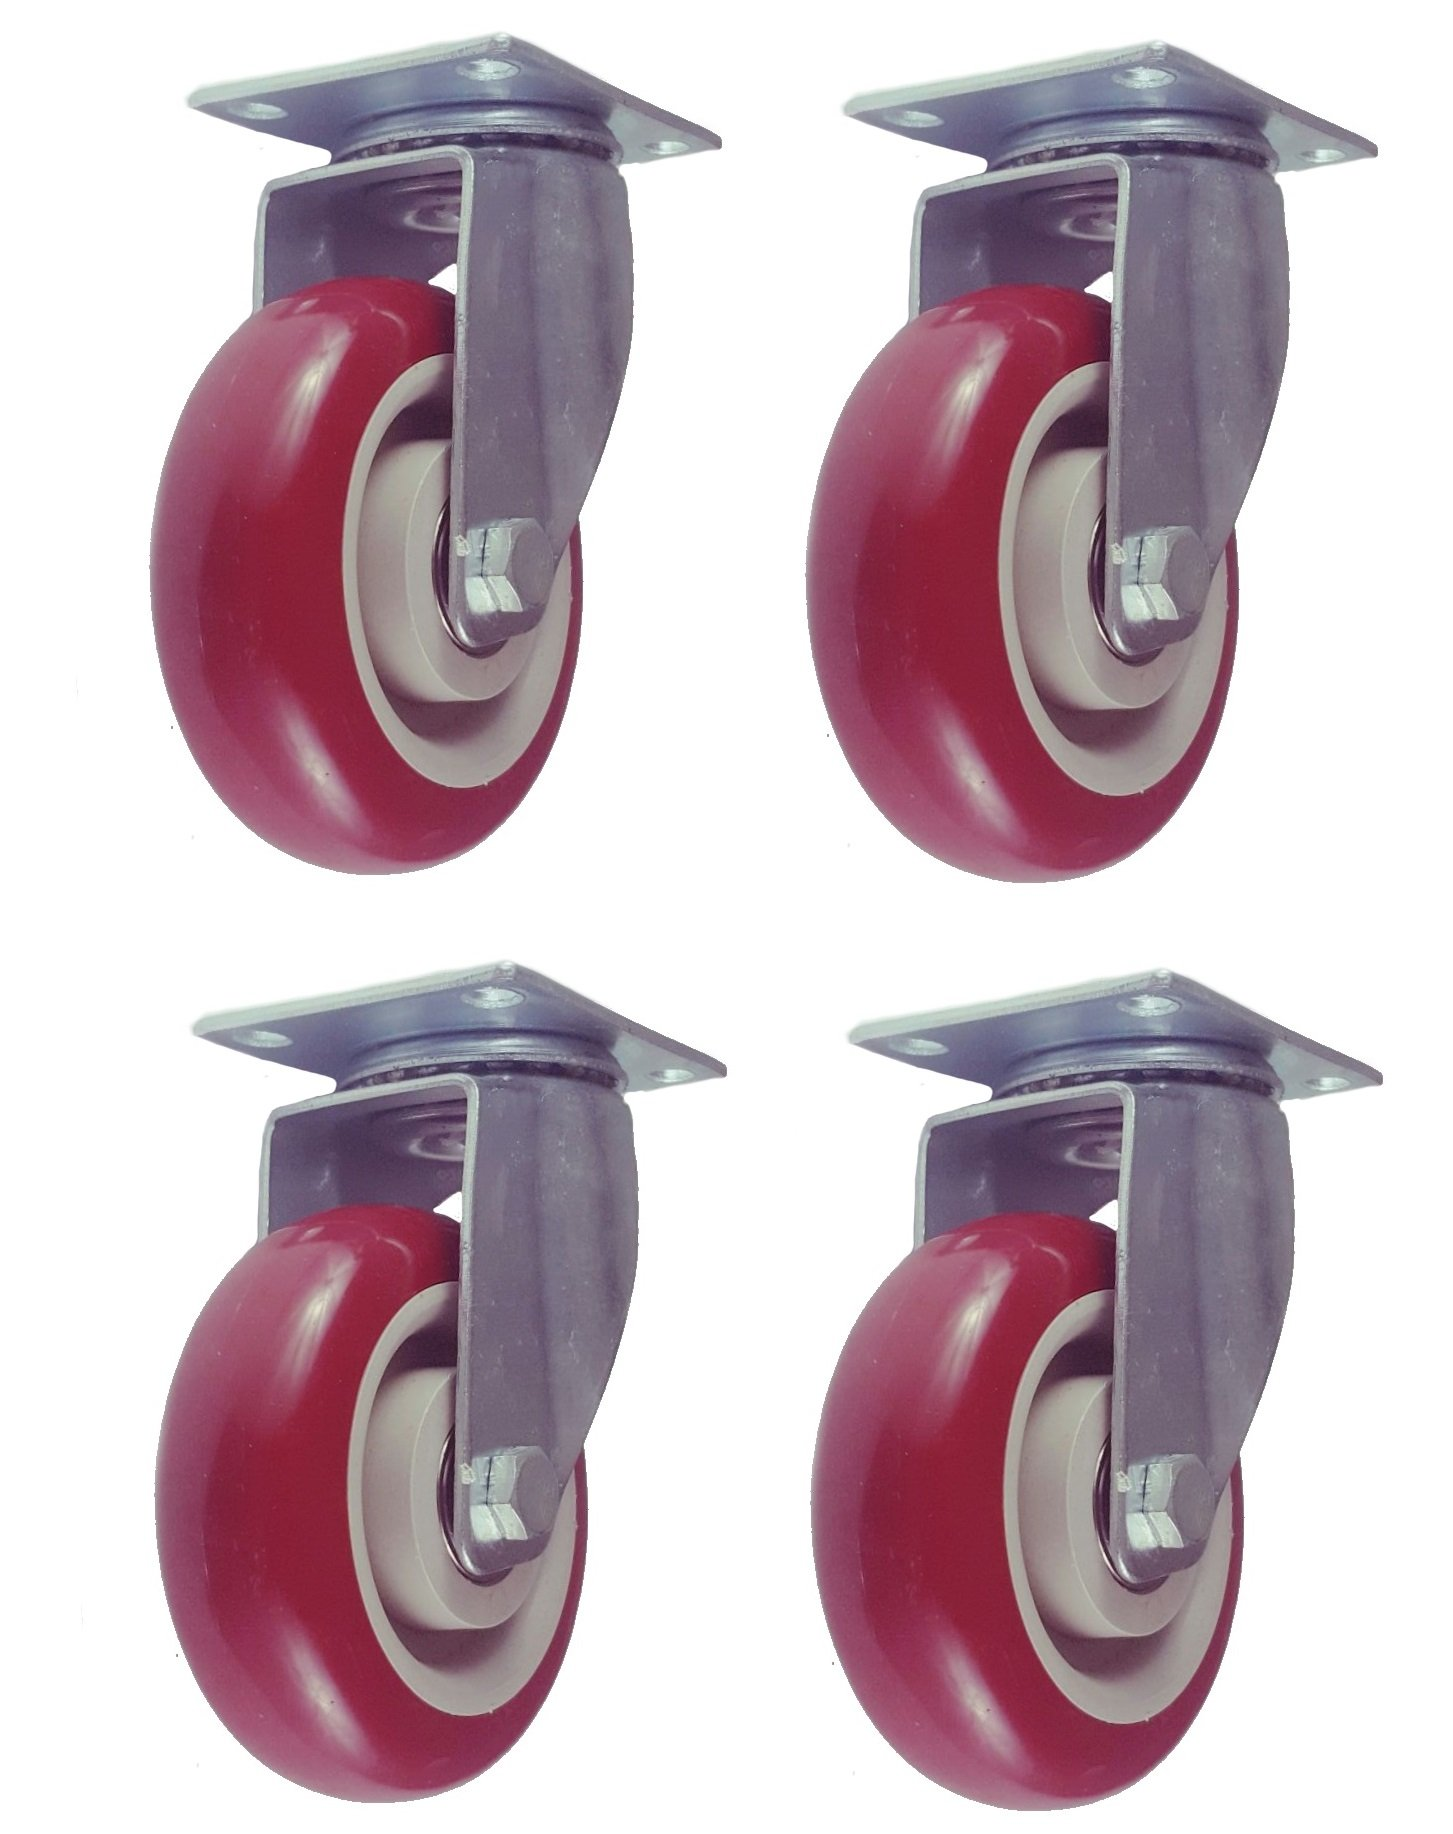 Online Best Service 4 Pack Caster Wheels Swivel Plate Casters On Red Polyurethane Wheels (4 inch Plate)